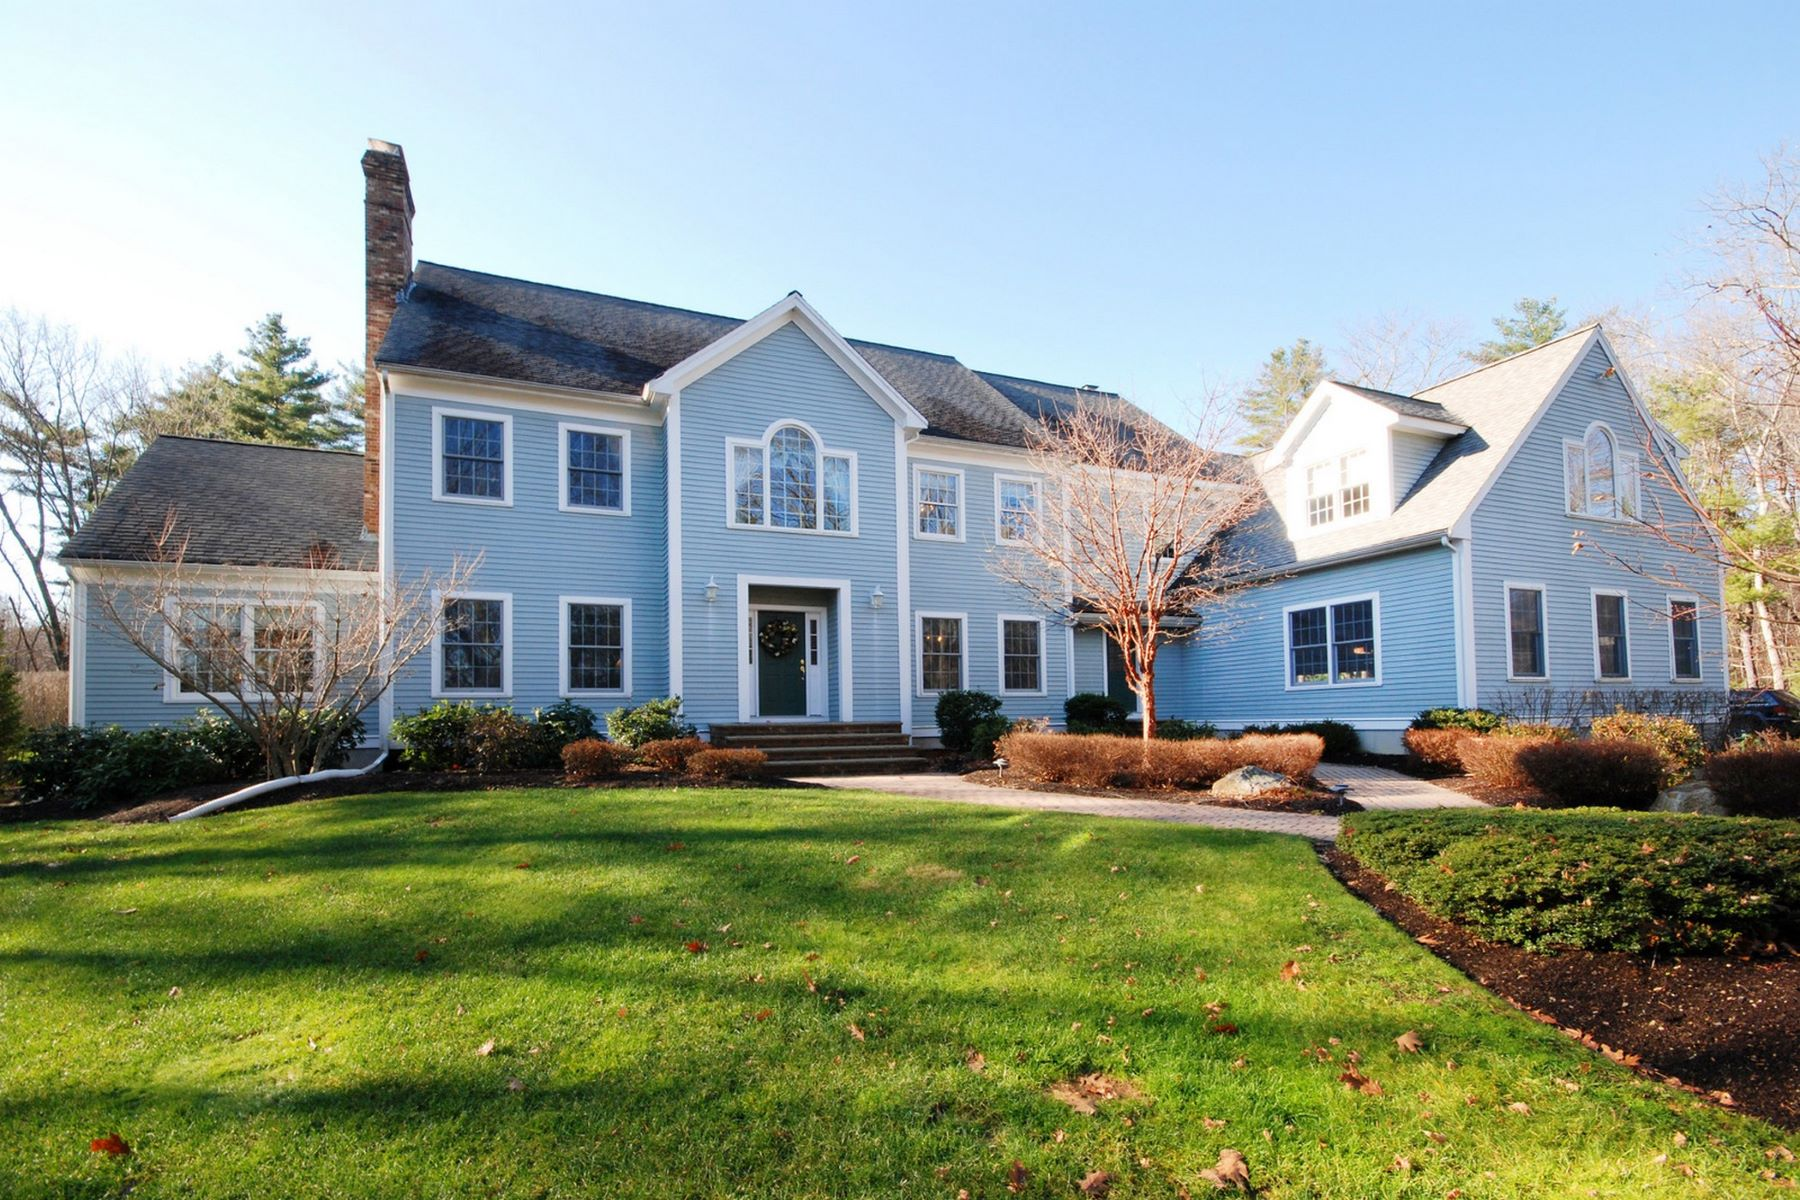 Частный односемейный дом для того Продажа на Custom Built Colonial On Stunning Grounds in Coveted Location 597 School Street Carlisle, Массачусетс 01741 Соединенные Штаты